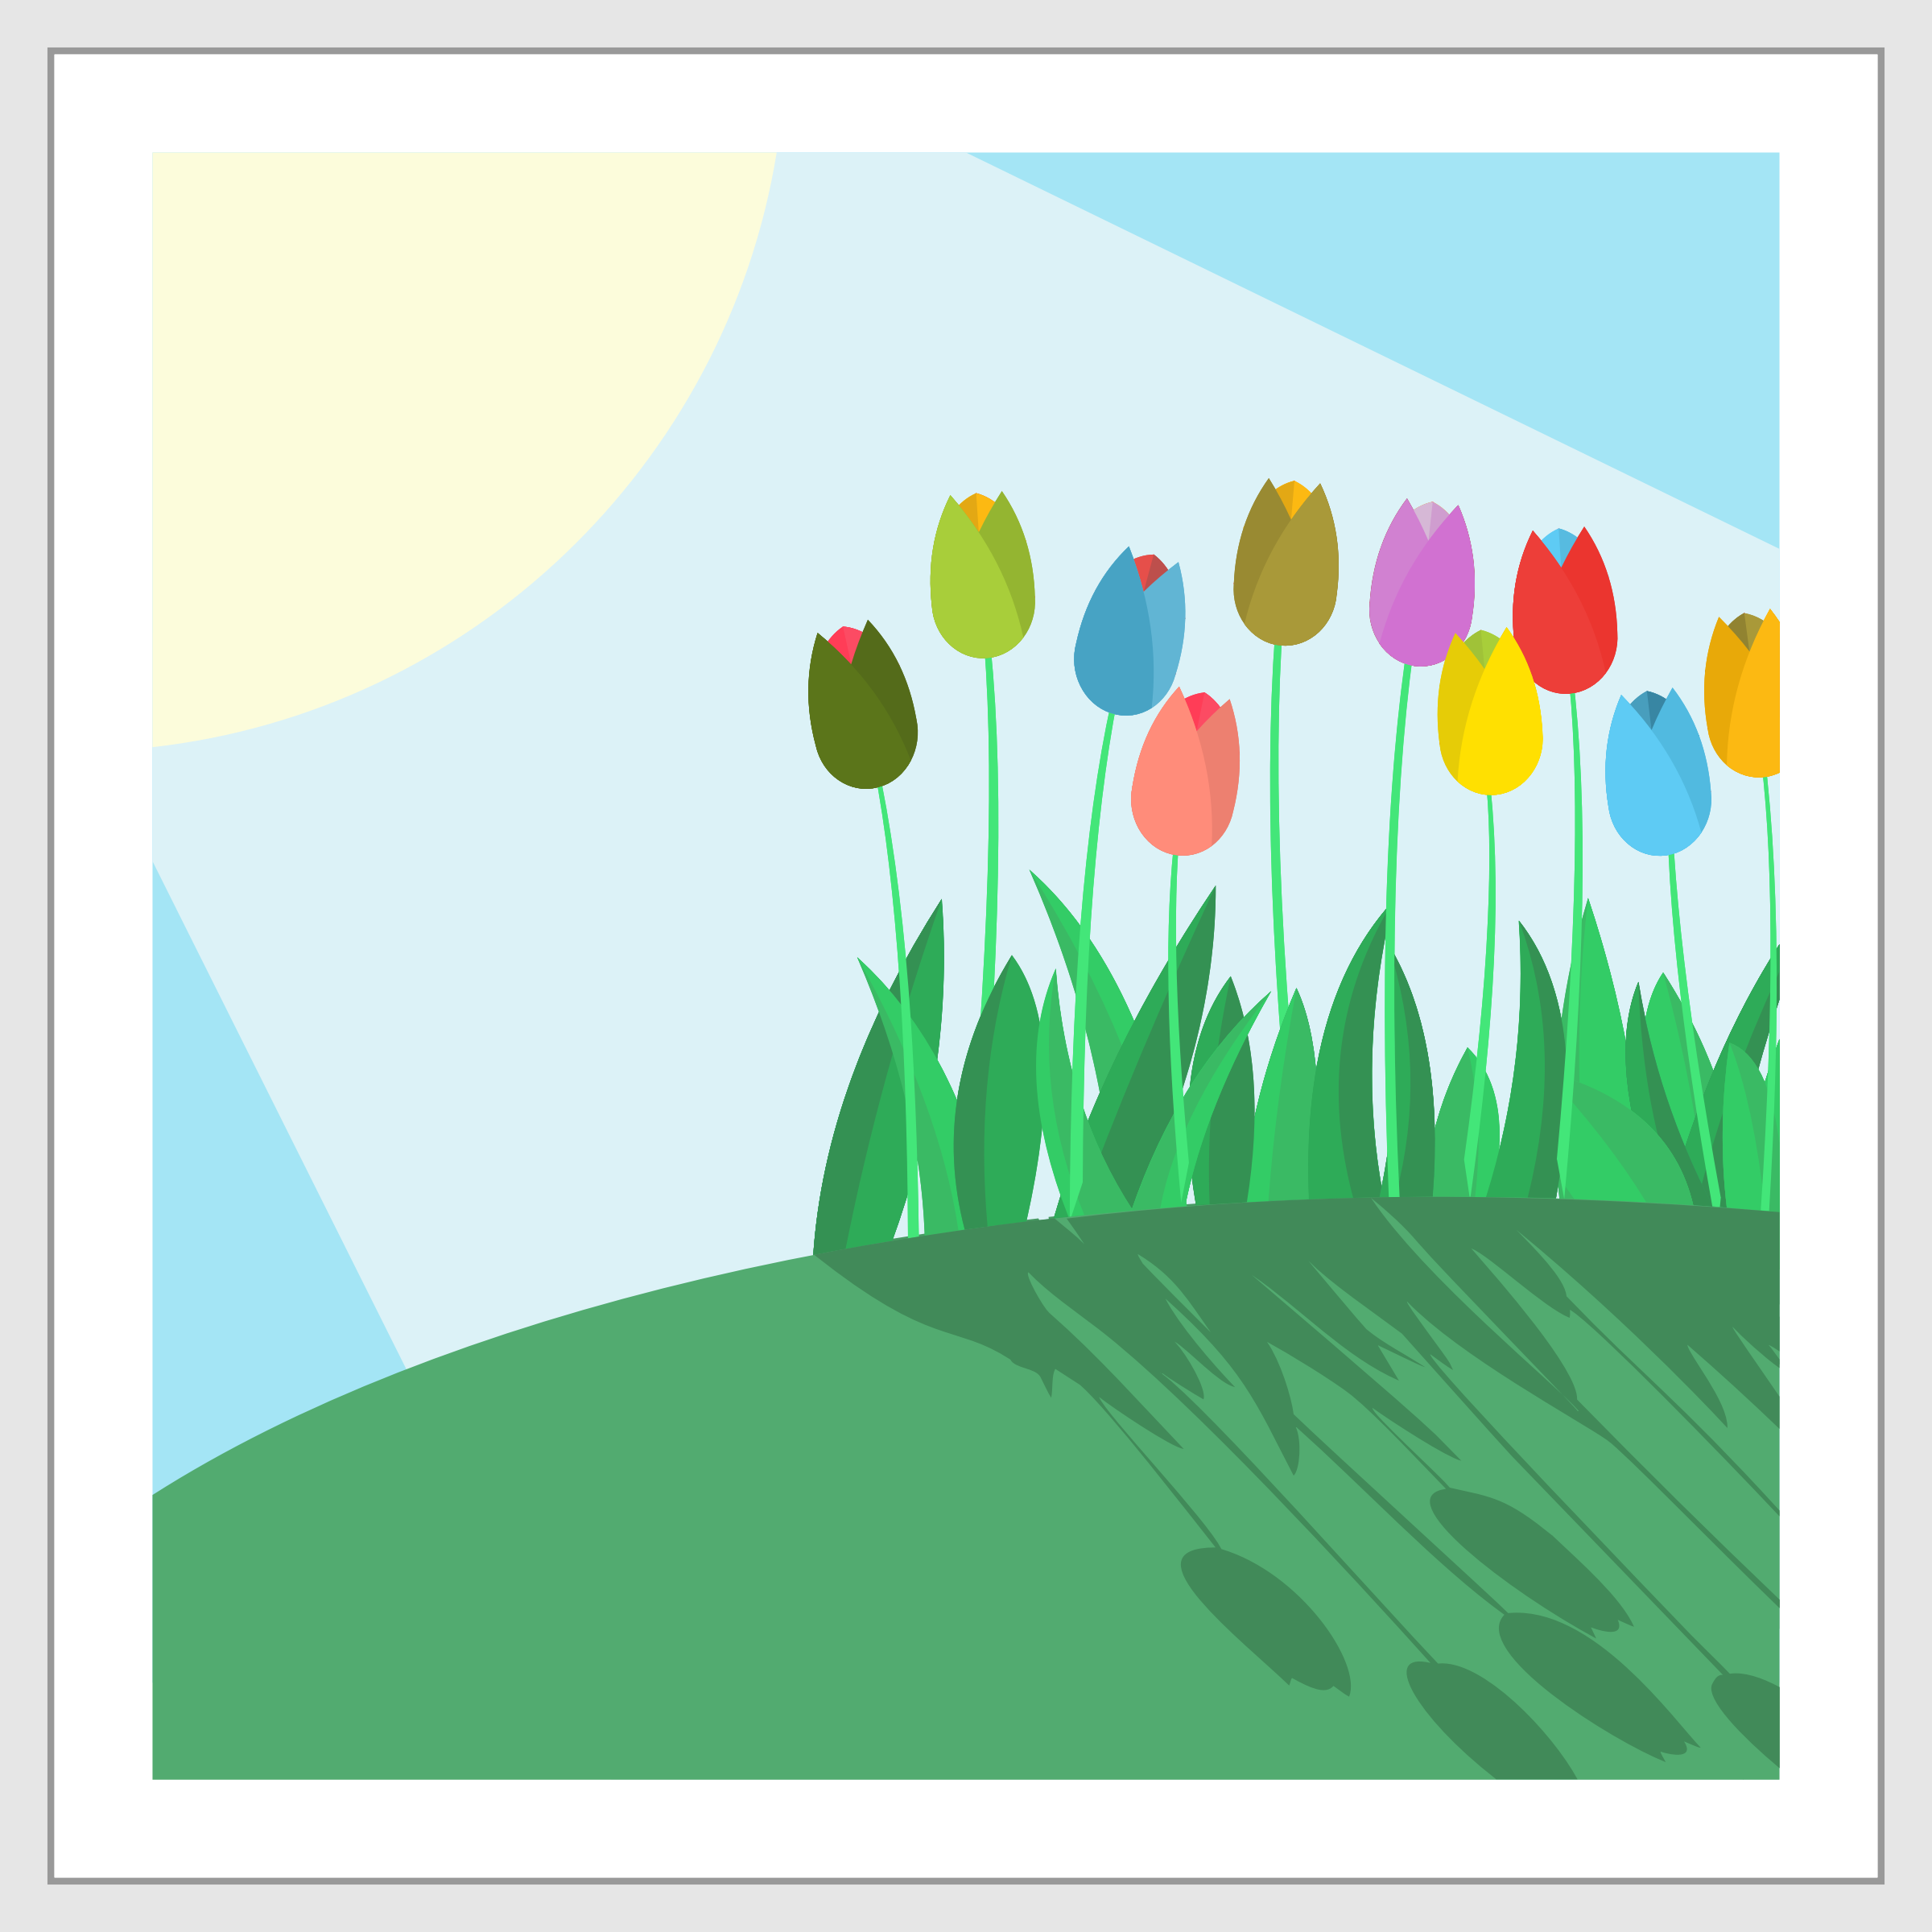 Tulips on a Hill by barrettward